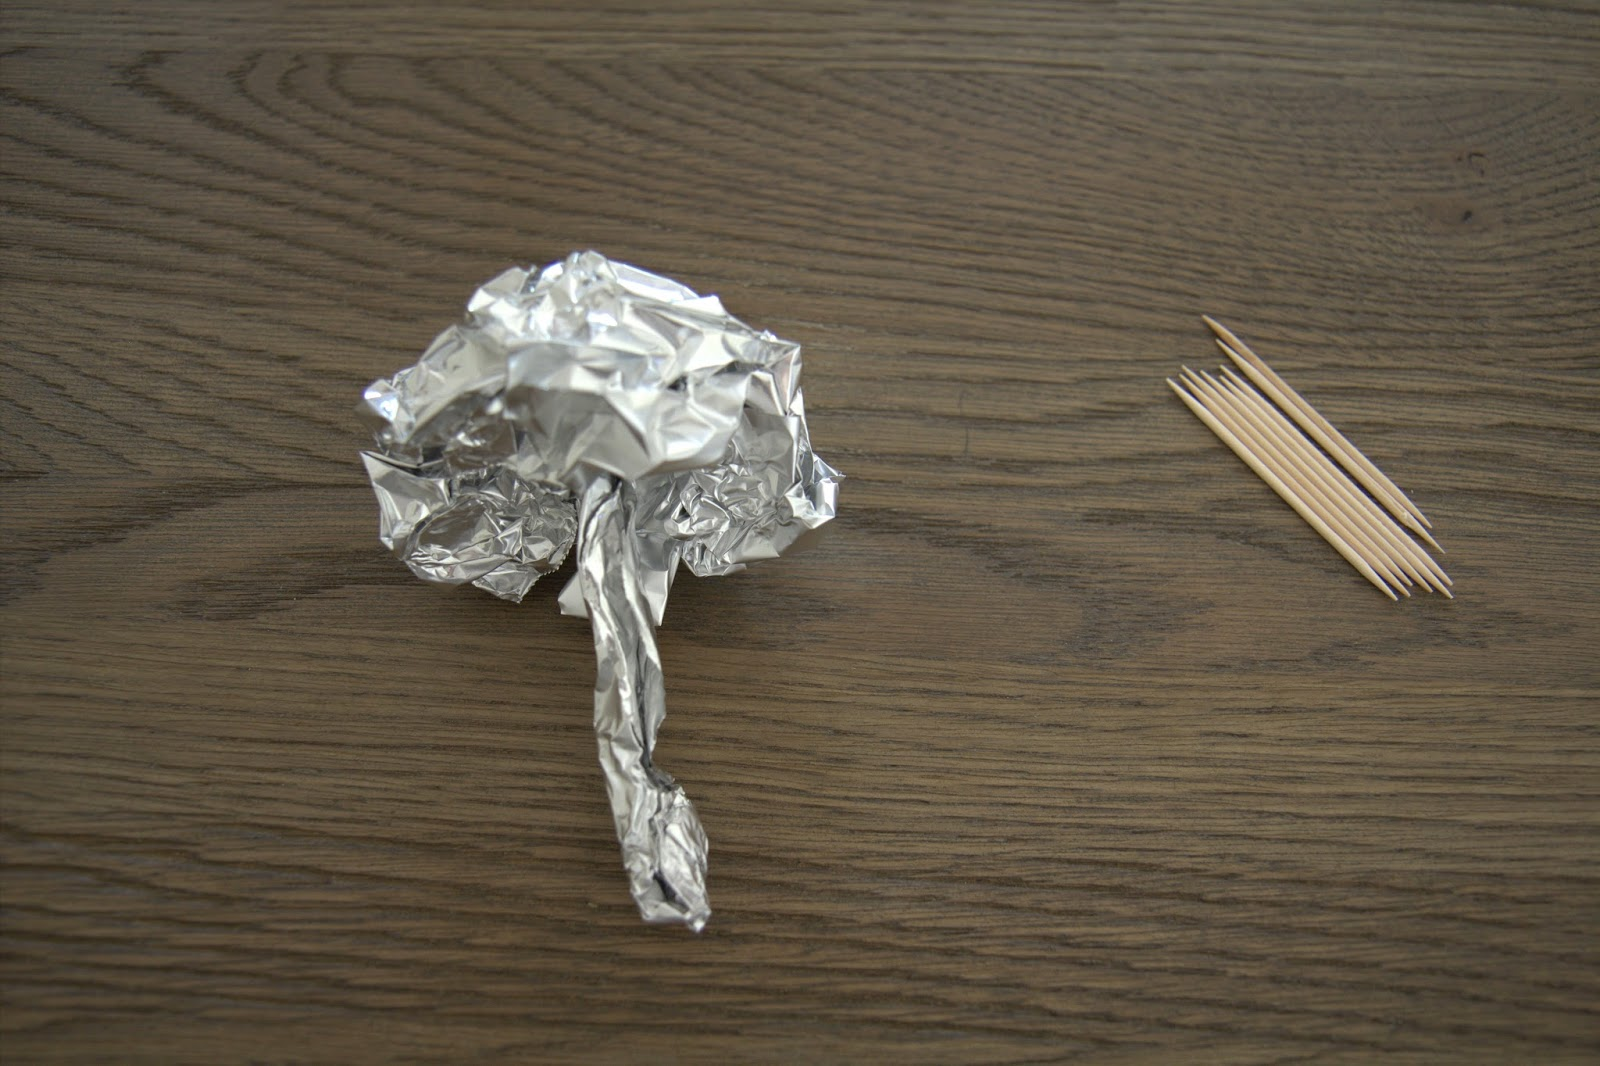 Making Paper Mache Mushrooms - DIY 7